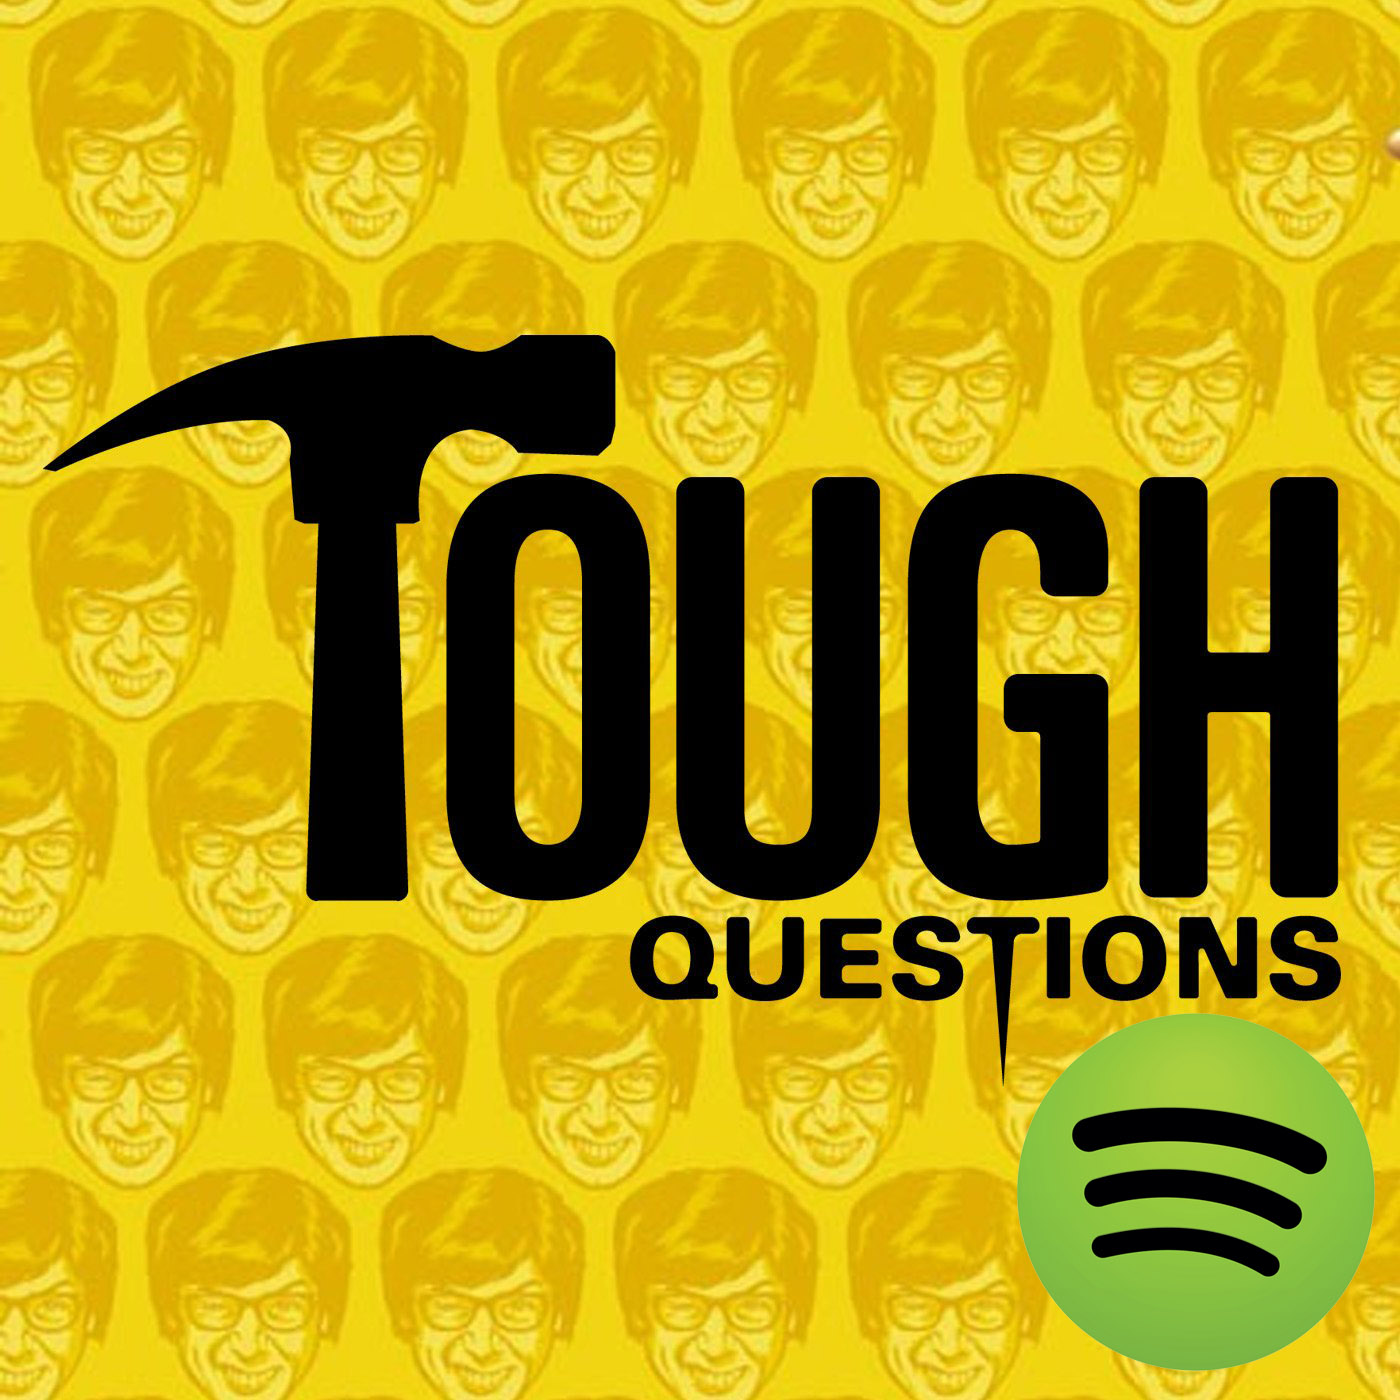 tough questions on  Spotify!